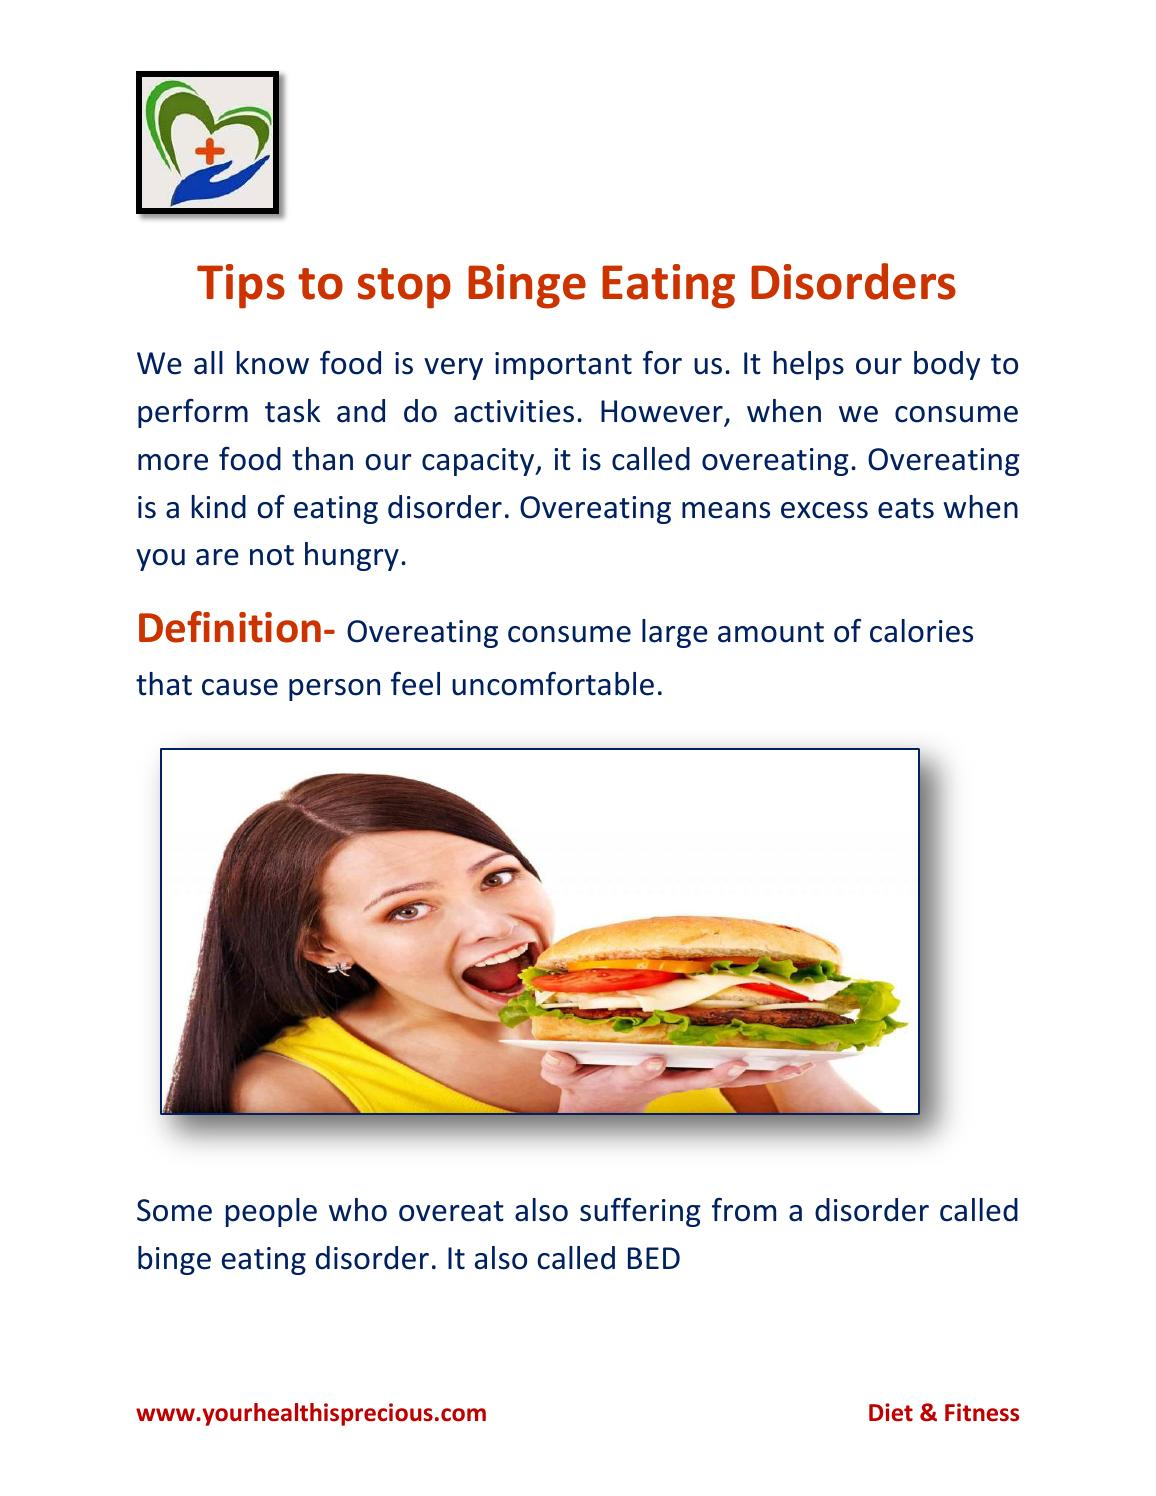 tips to stop eating disorders by yourhealthisprecious - issuu